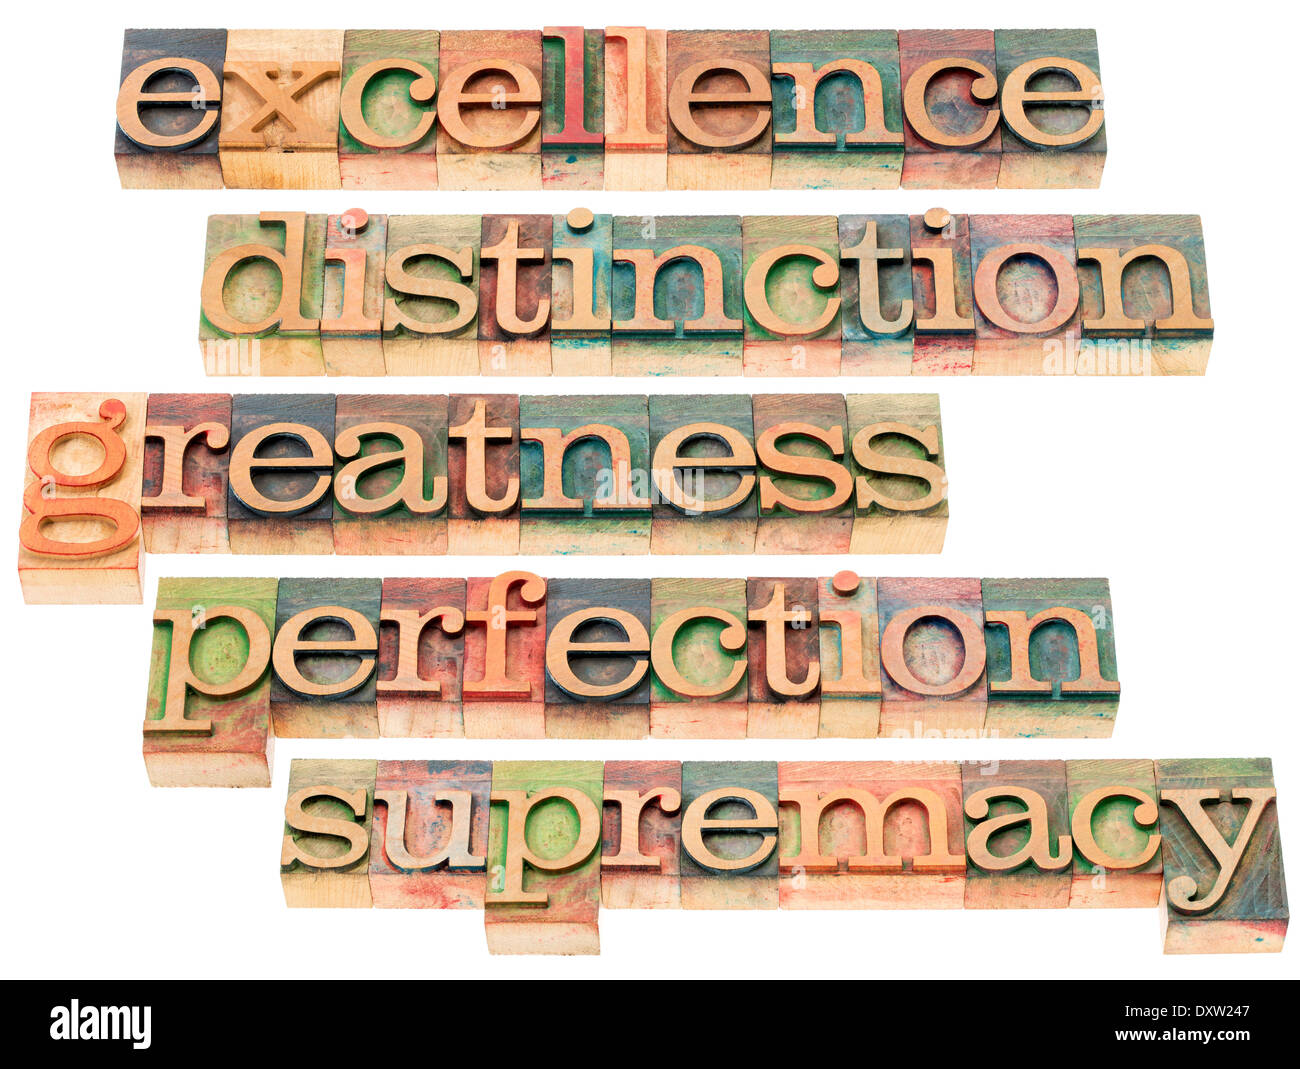 excellence, distinction, greatness, perfection and supremacy - a collage of isolated words in letterpress wood type - Stock Image